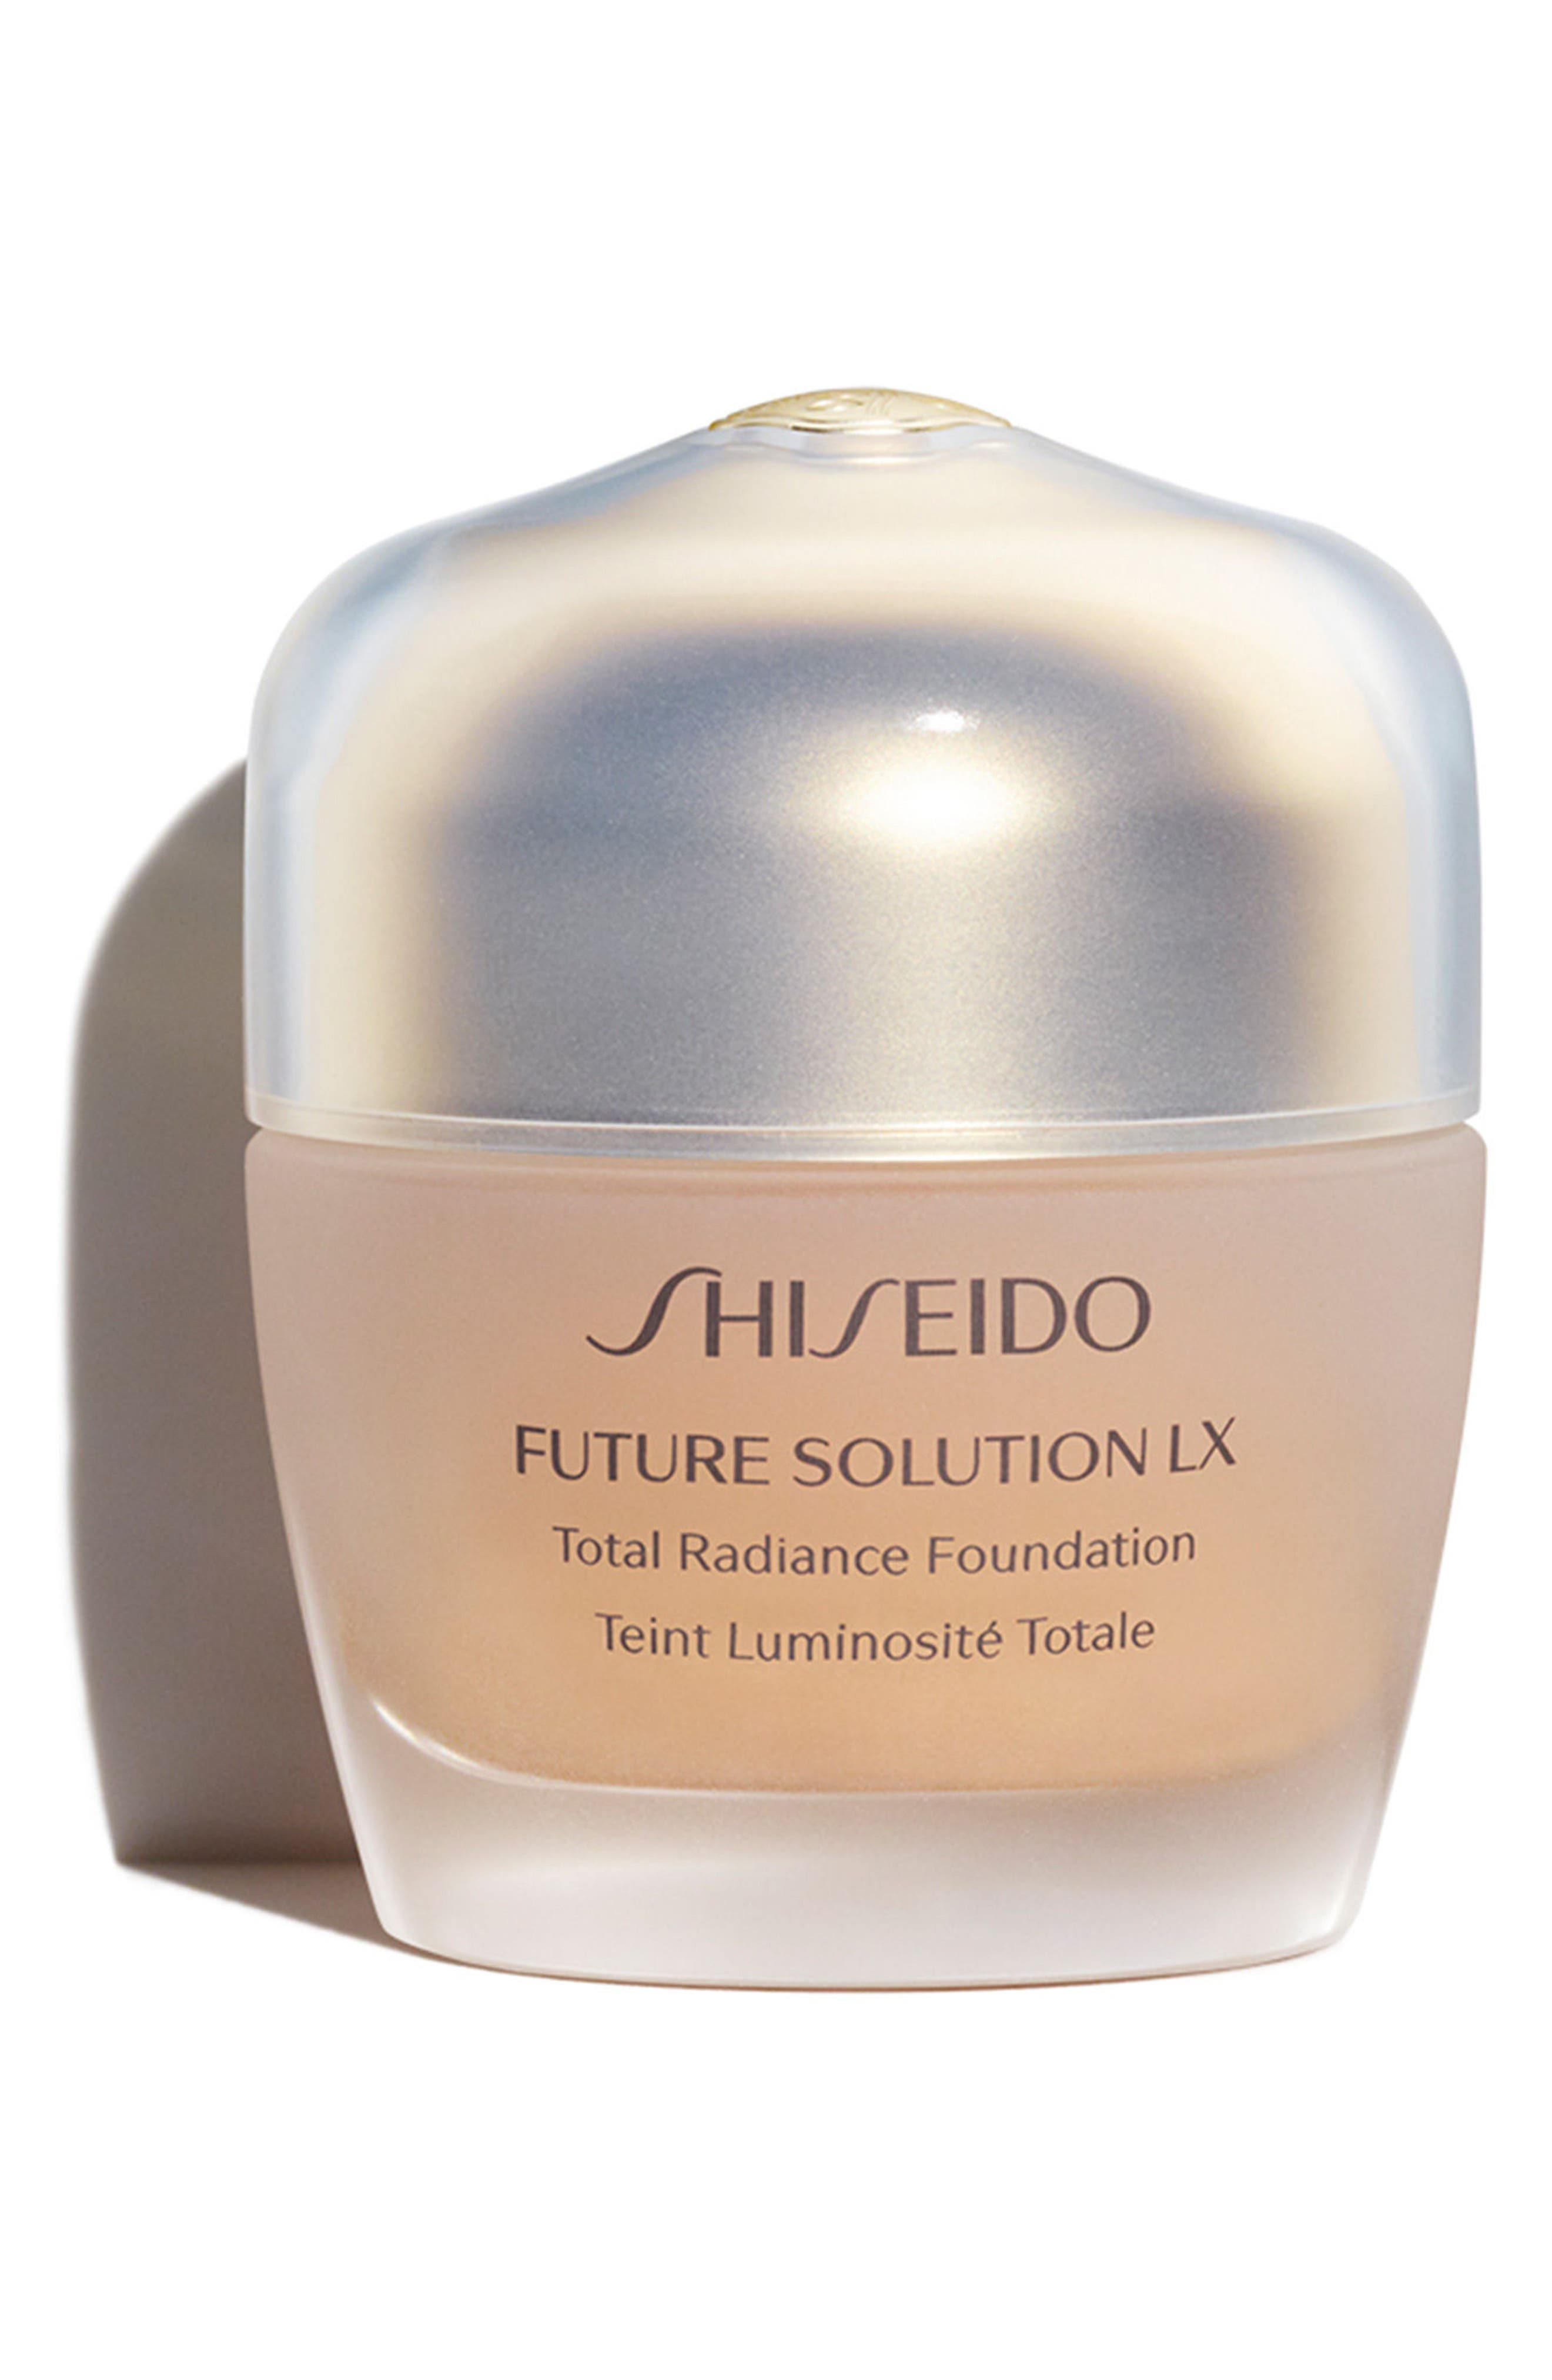 Future Solution LX Total Radiance Foundation Broad Spectrum SPF 20 Sunscreen,                         Main,                         color, GOLDEN 3